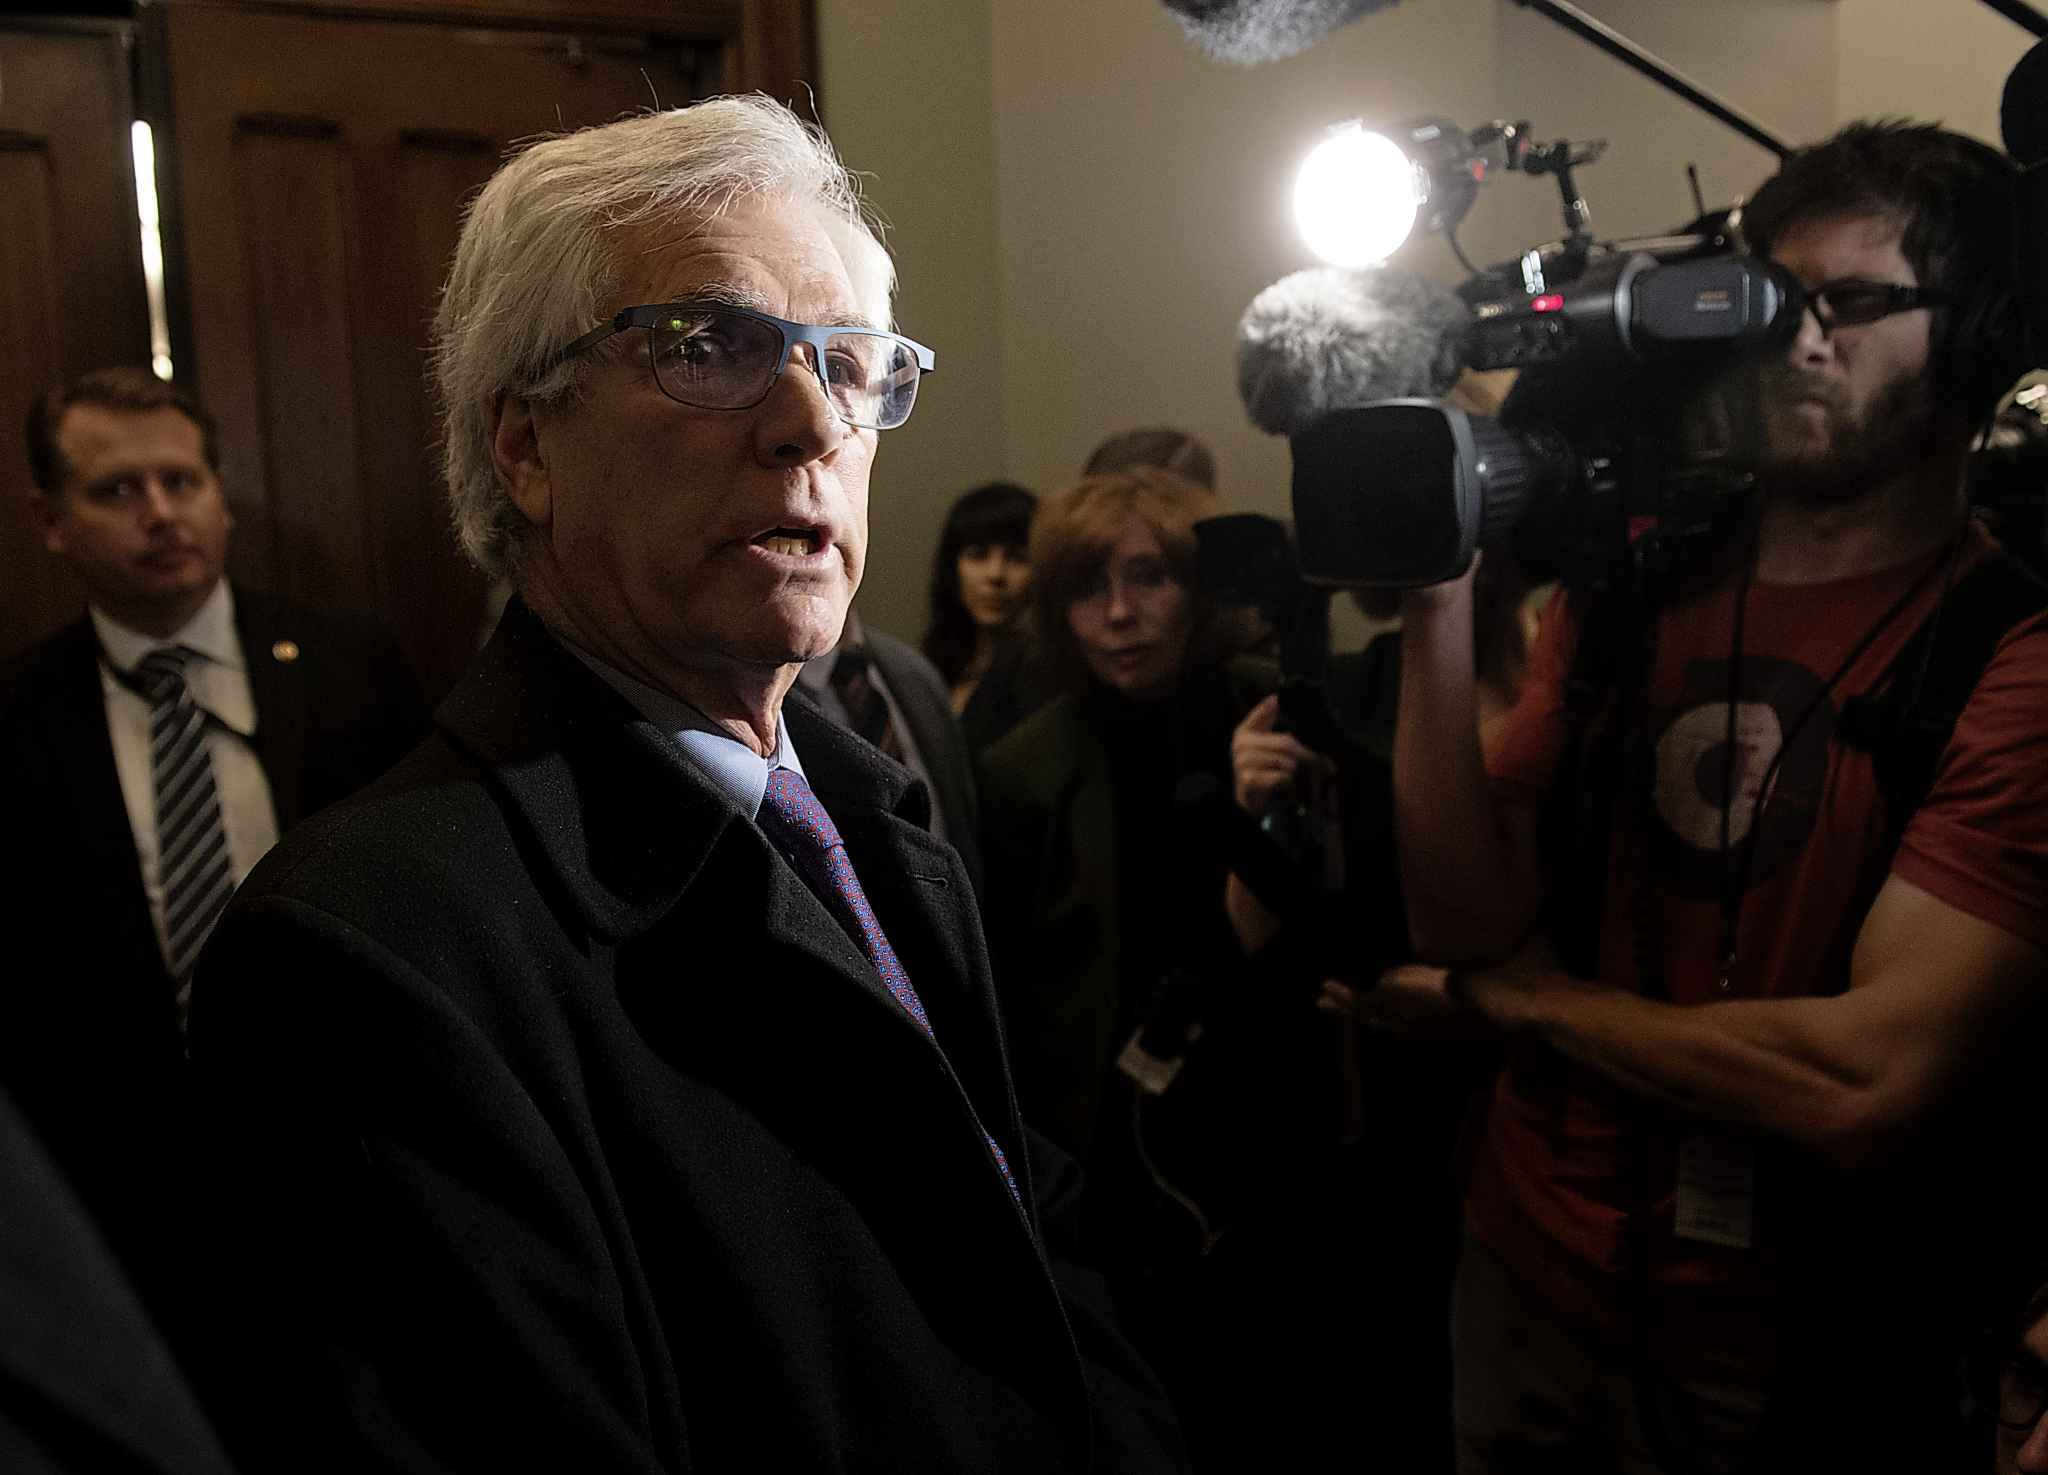 Winnipeg MP Jim Carr says he'll do his best to oversee the Prairies for Prime Minister Justin Trudeau. (Adrian Wyld / Canadian Press)